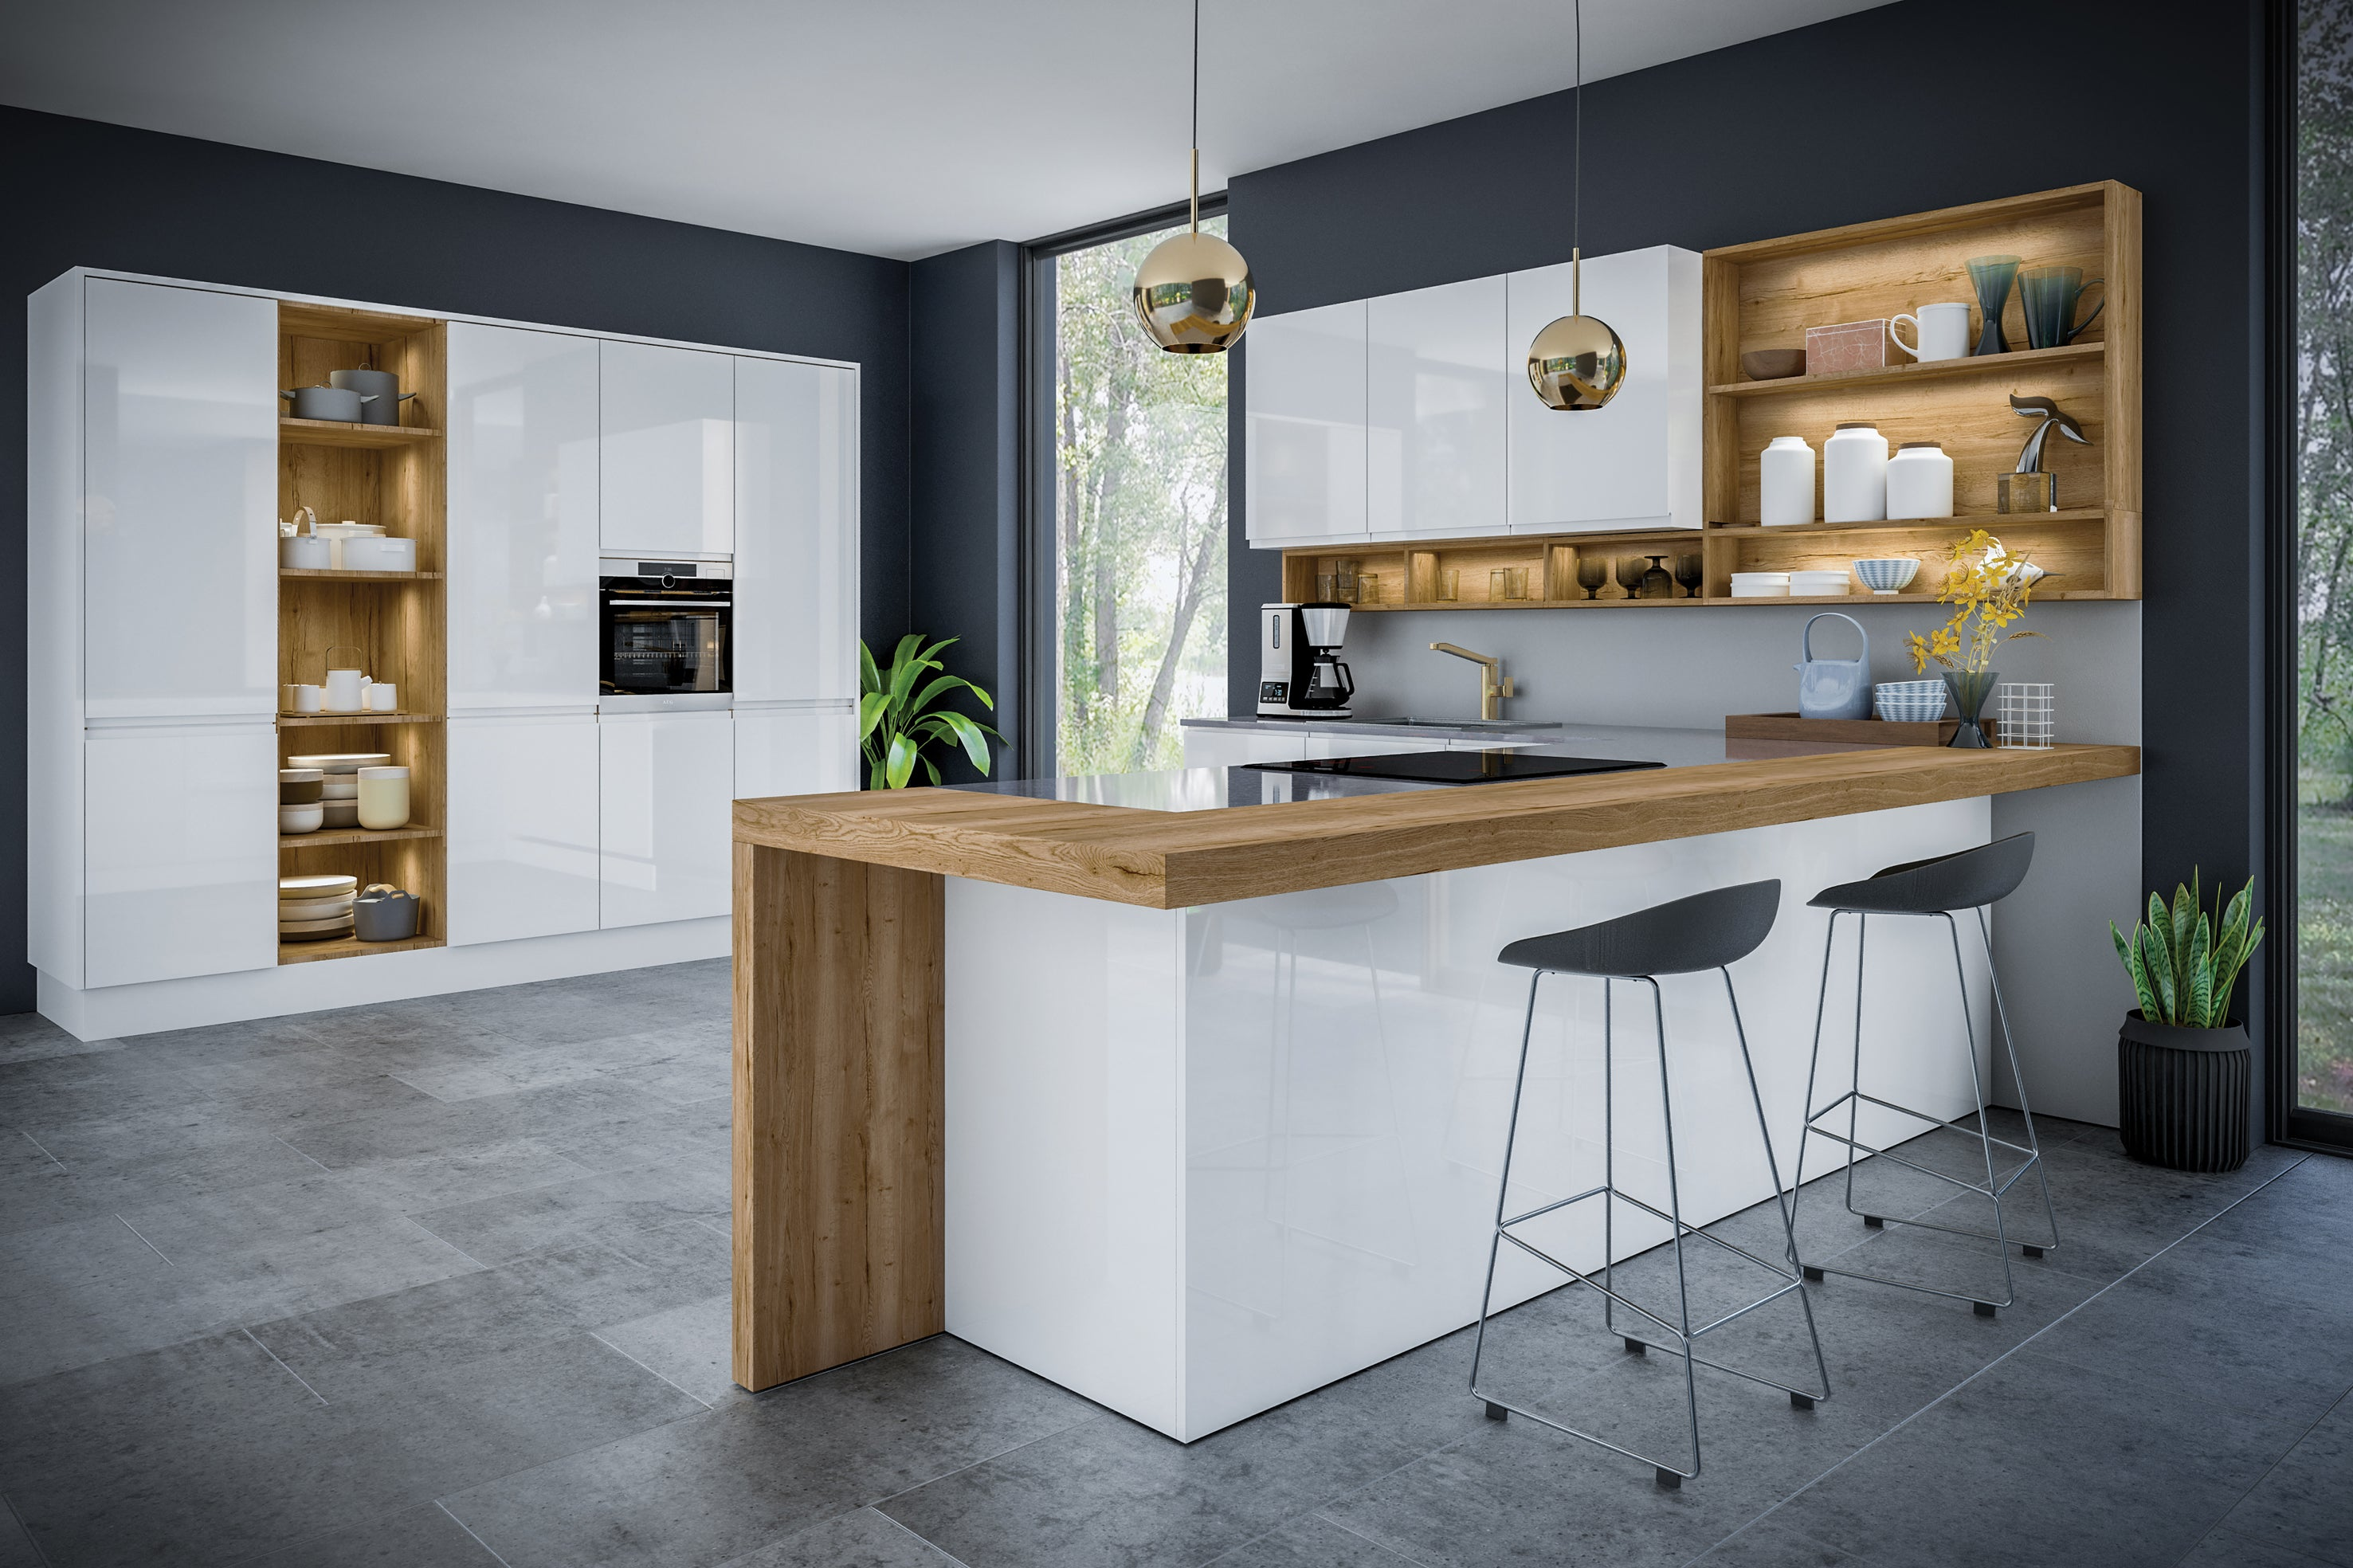 Jayline Handleless High Gloss Kitchen Accessories - Numerous Colours - Just Click Kitchens